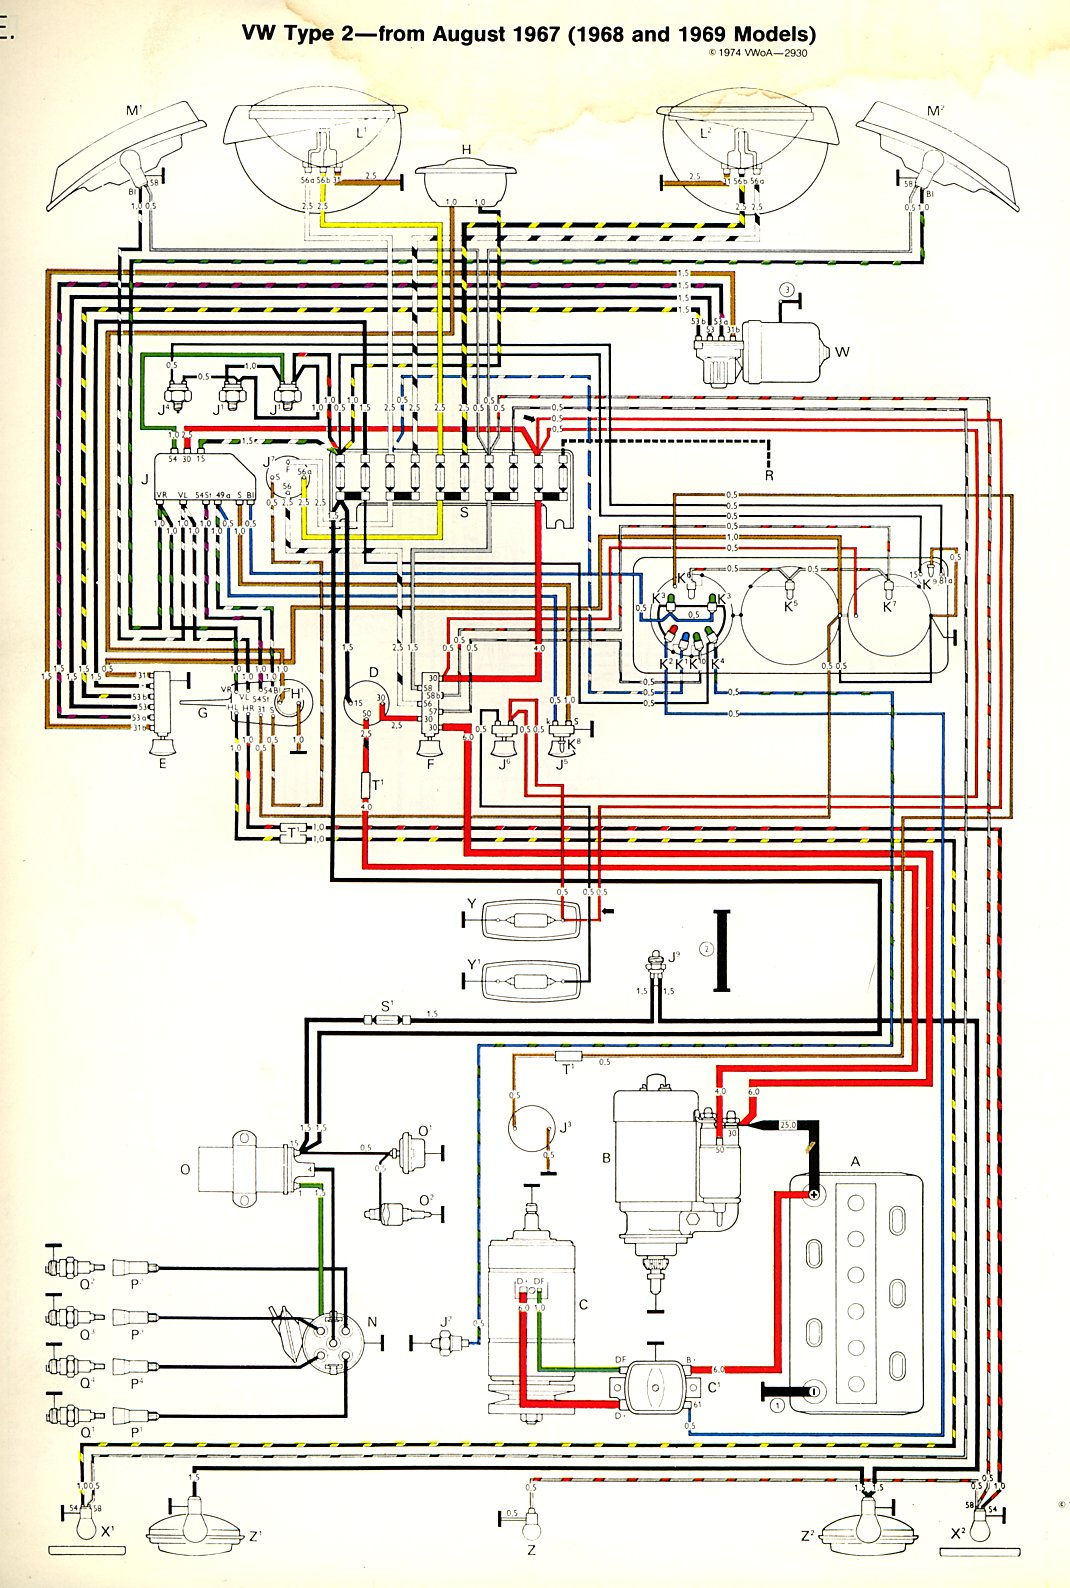 baybus_6869a 1972 vw engine diagram wiring library